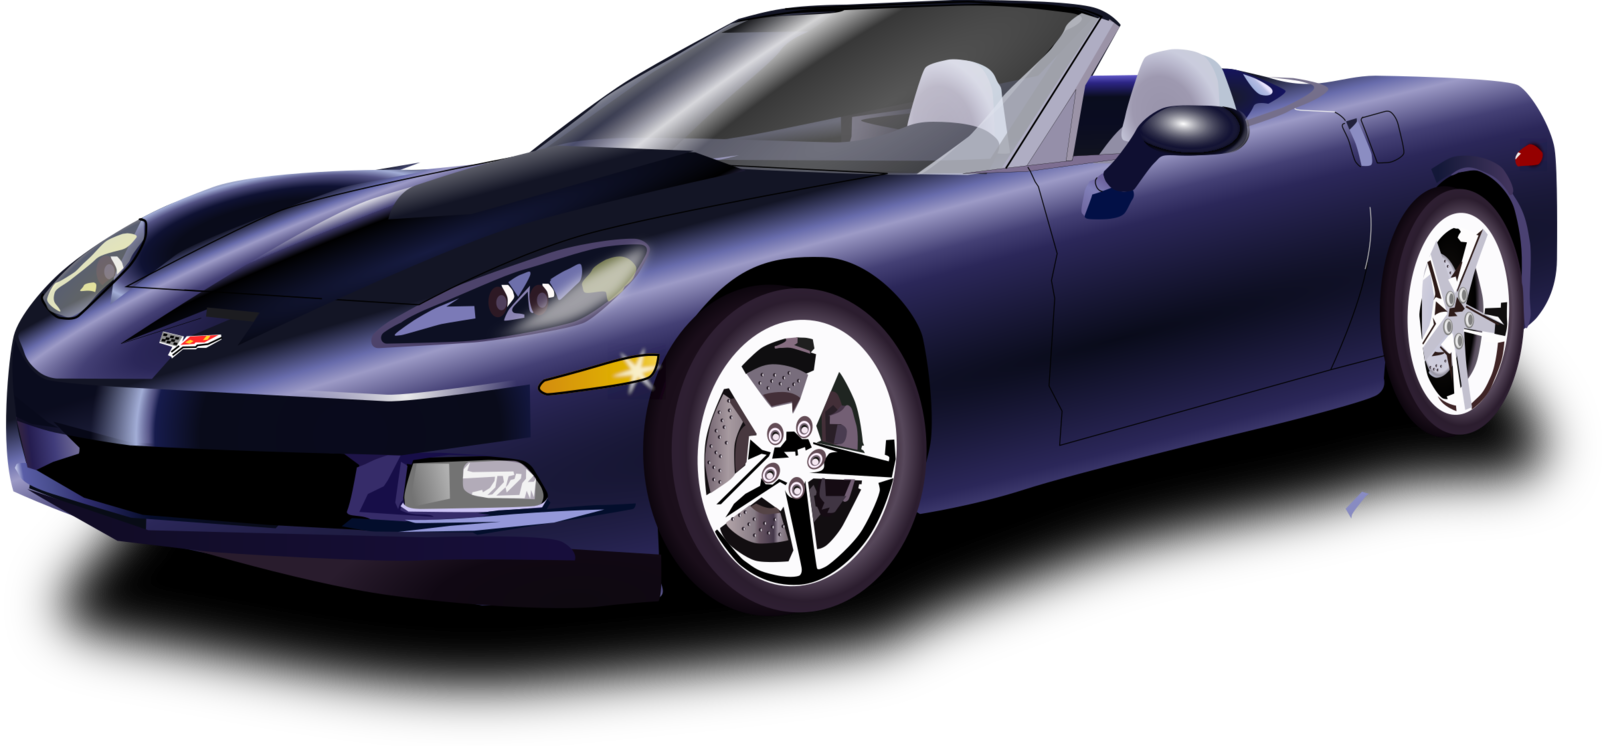 Wheel,Muscle Car,Automotive Exterior